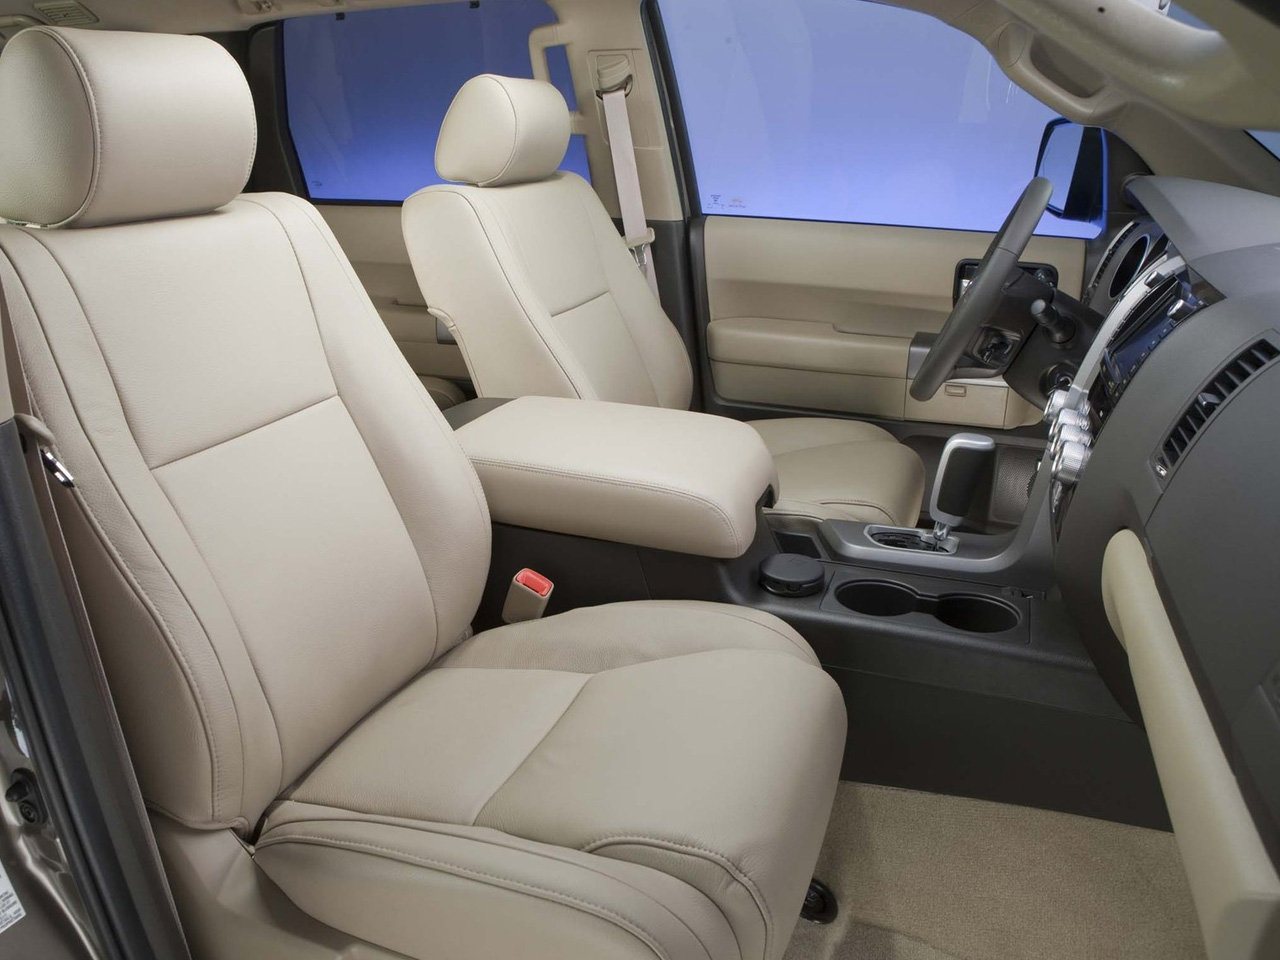 Toyota Sequoia interior #4